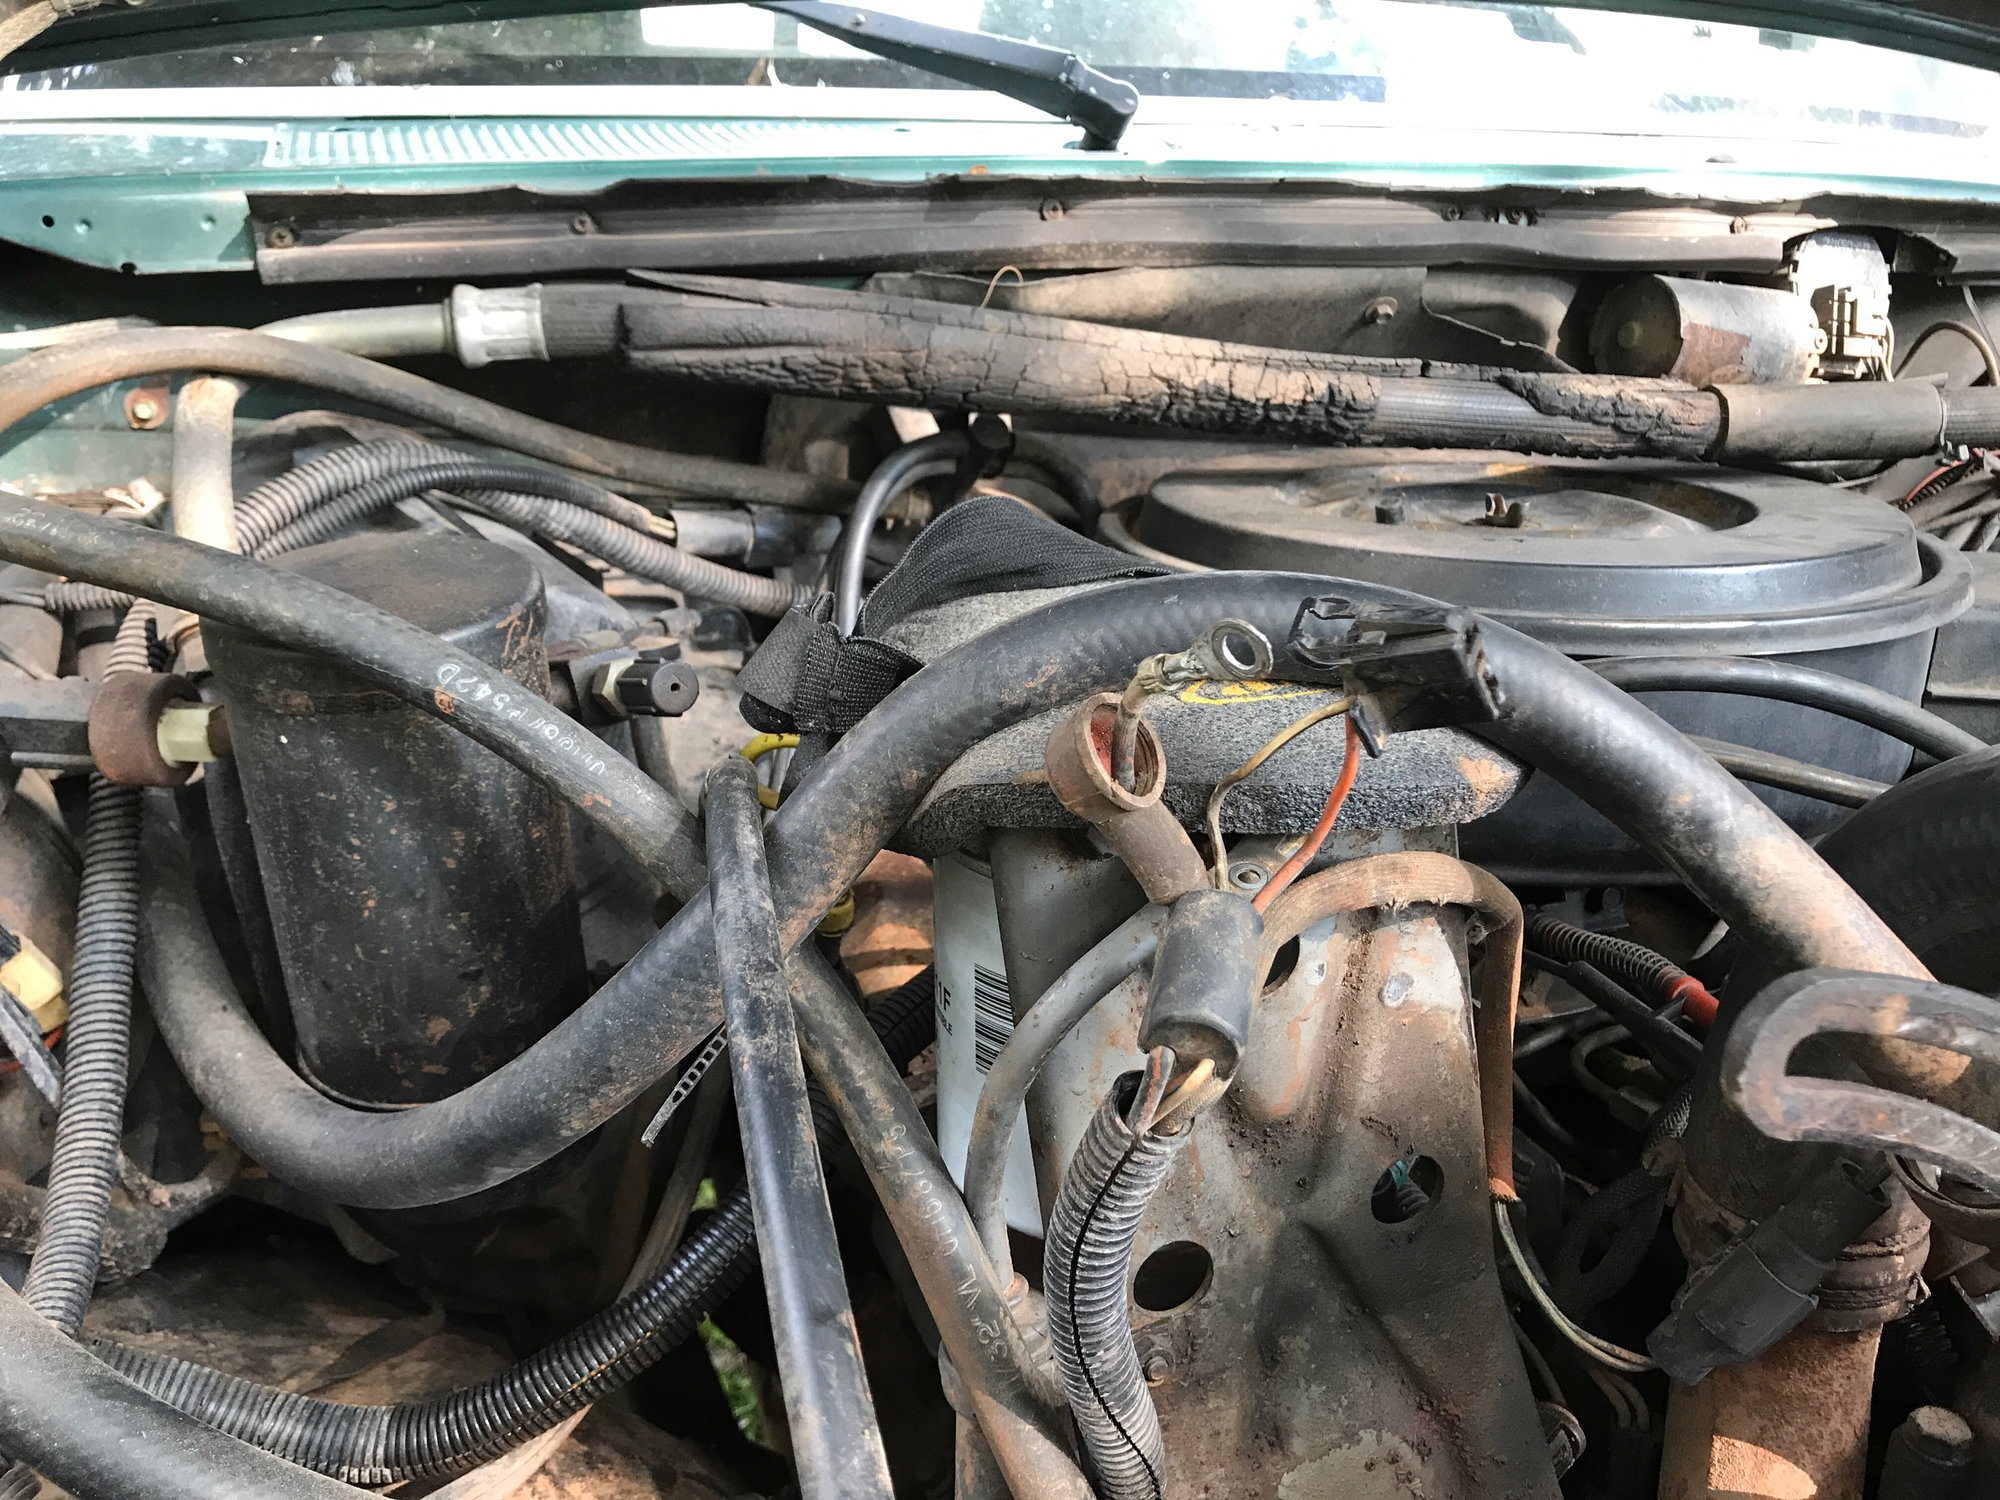 hight resolution of  harness connector to plug in to the alternator and connect to the existing wires does anyone have any advice or tips on what would work for this